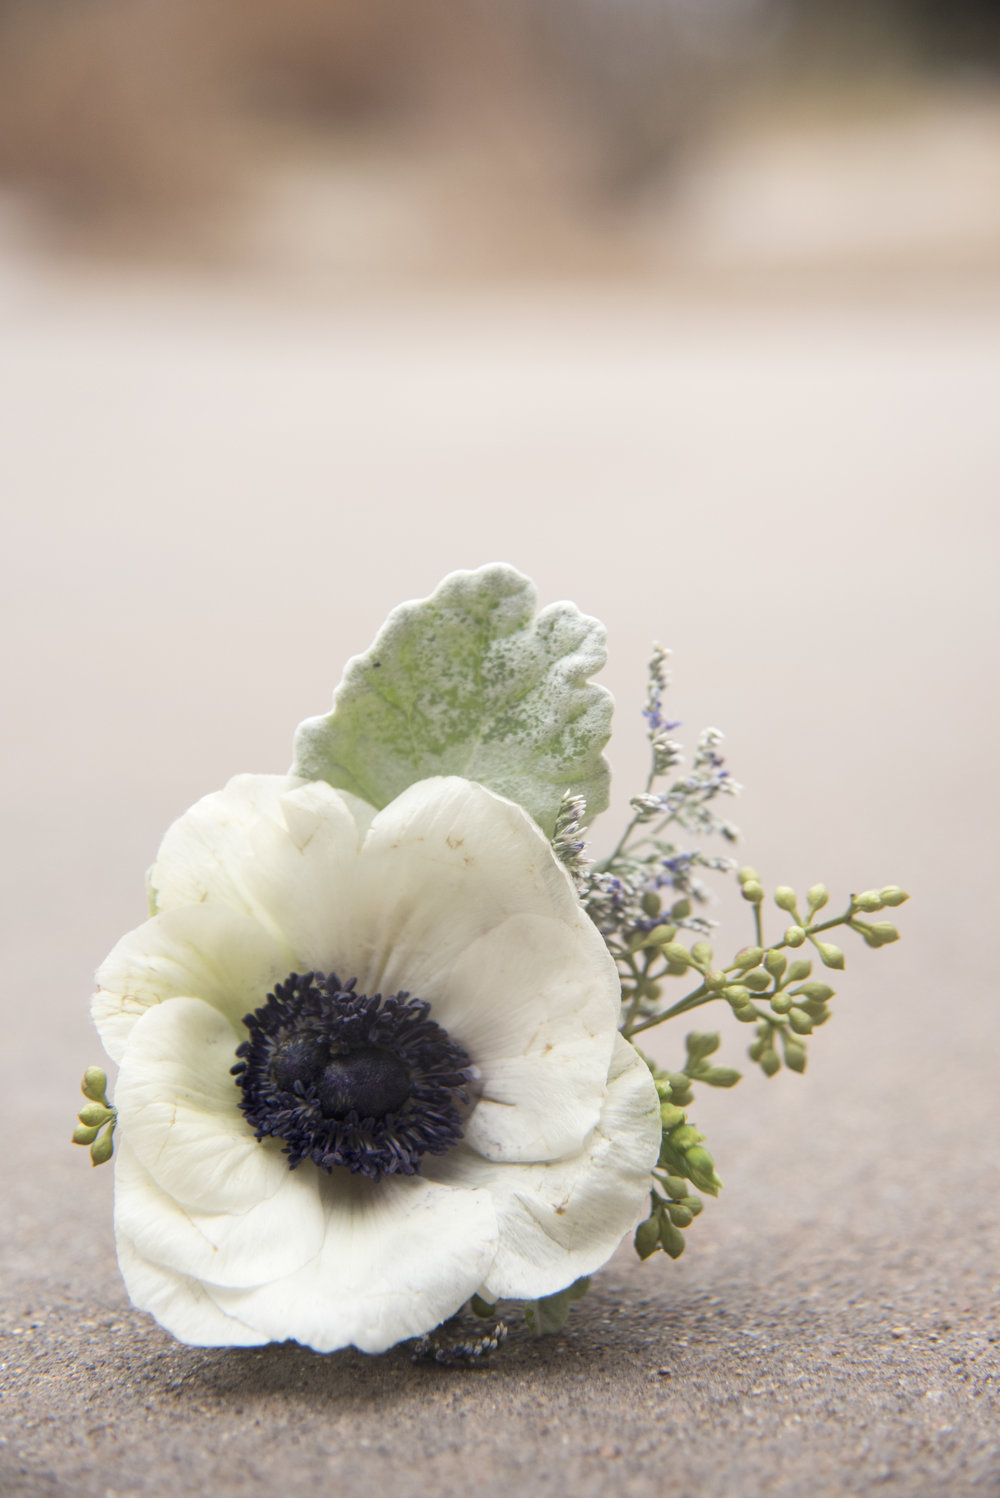 White flower close up | Mary and Brad's Outdoor Wedding Photography at Hudson Gardens | Colorado Springs, Colorado | Farm Wedding Photographer | Apollo Fields Wedding Photojournalism